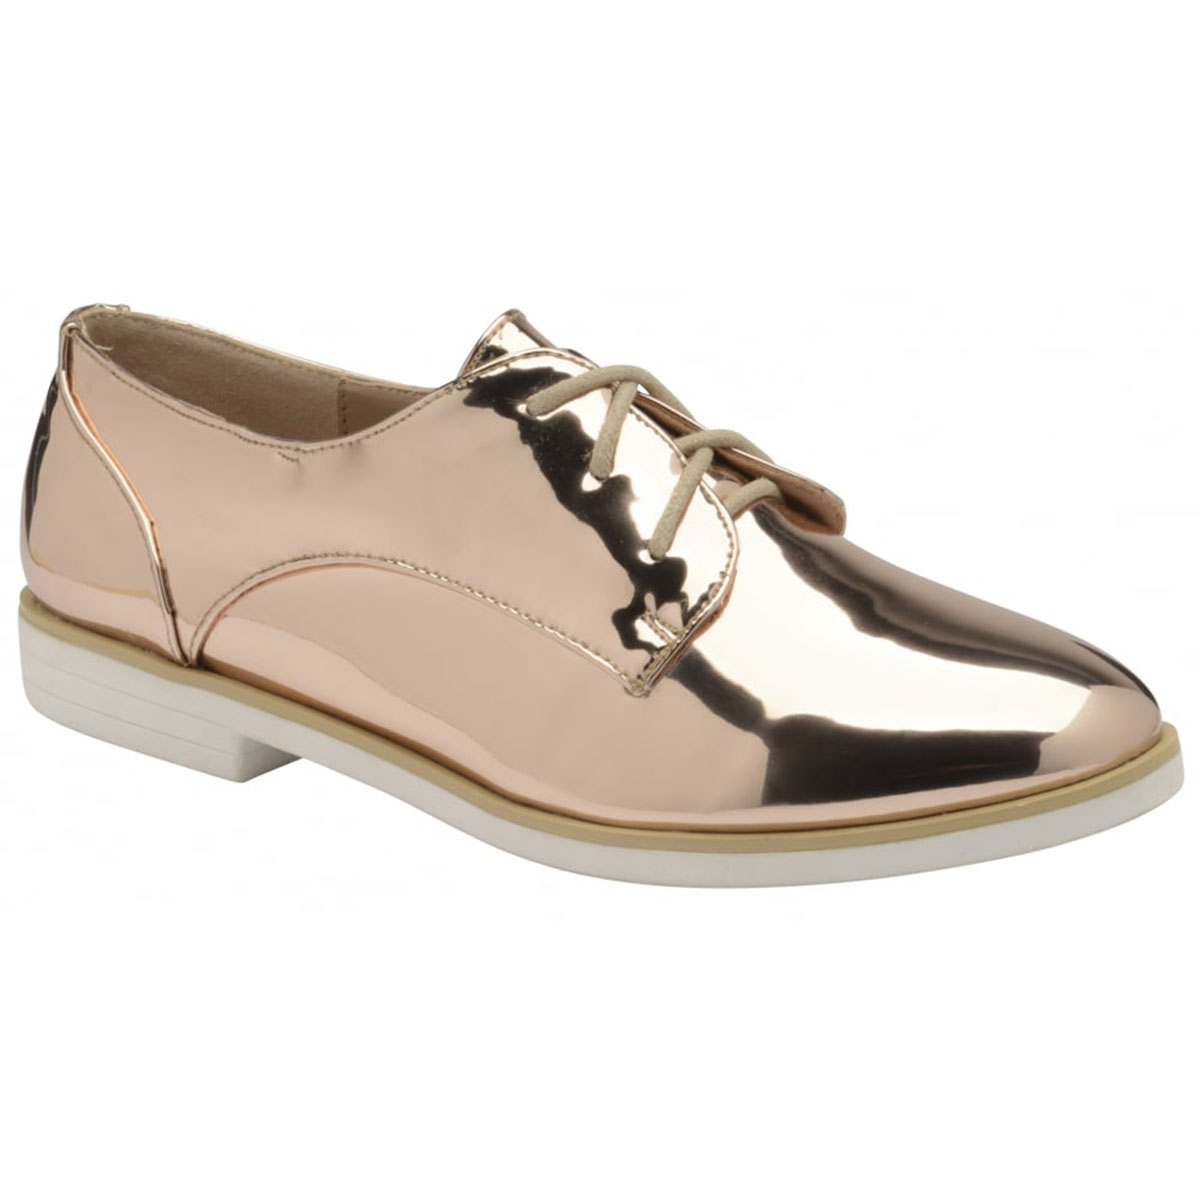 2c9742ca061 Sentinel LADIES DOLCIS KIA ROSE GOLD FLAT LACE-UP METALLIC BROGUE PUMPS  LOAFERS SHOES 3-